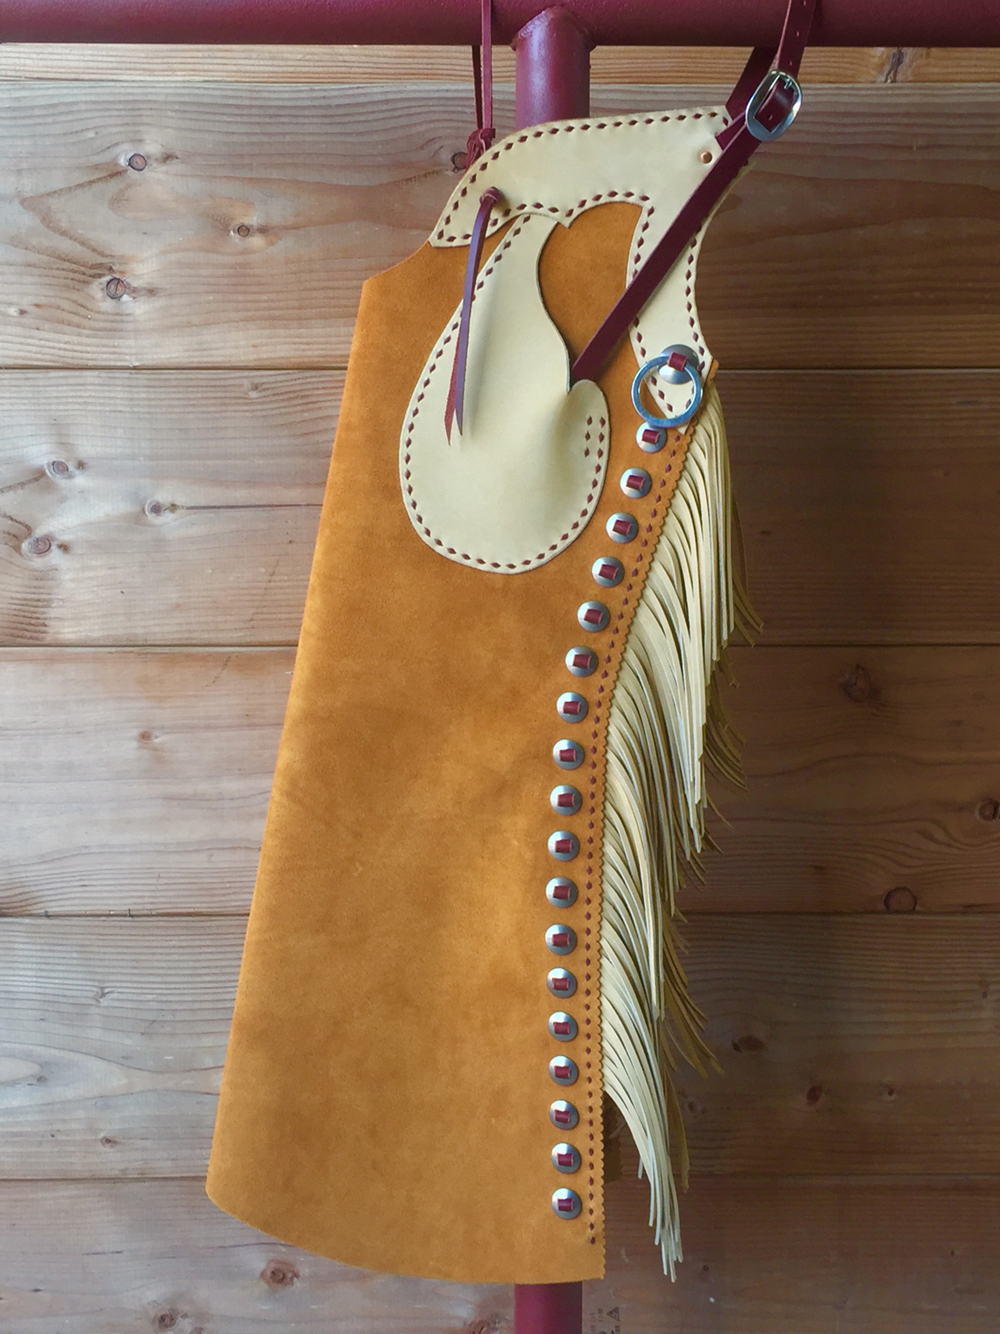 Texas Bell Chaps by Franco X. Trevino